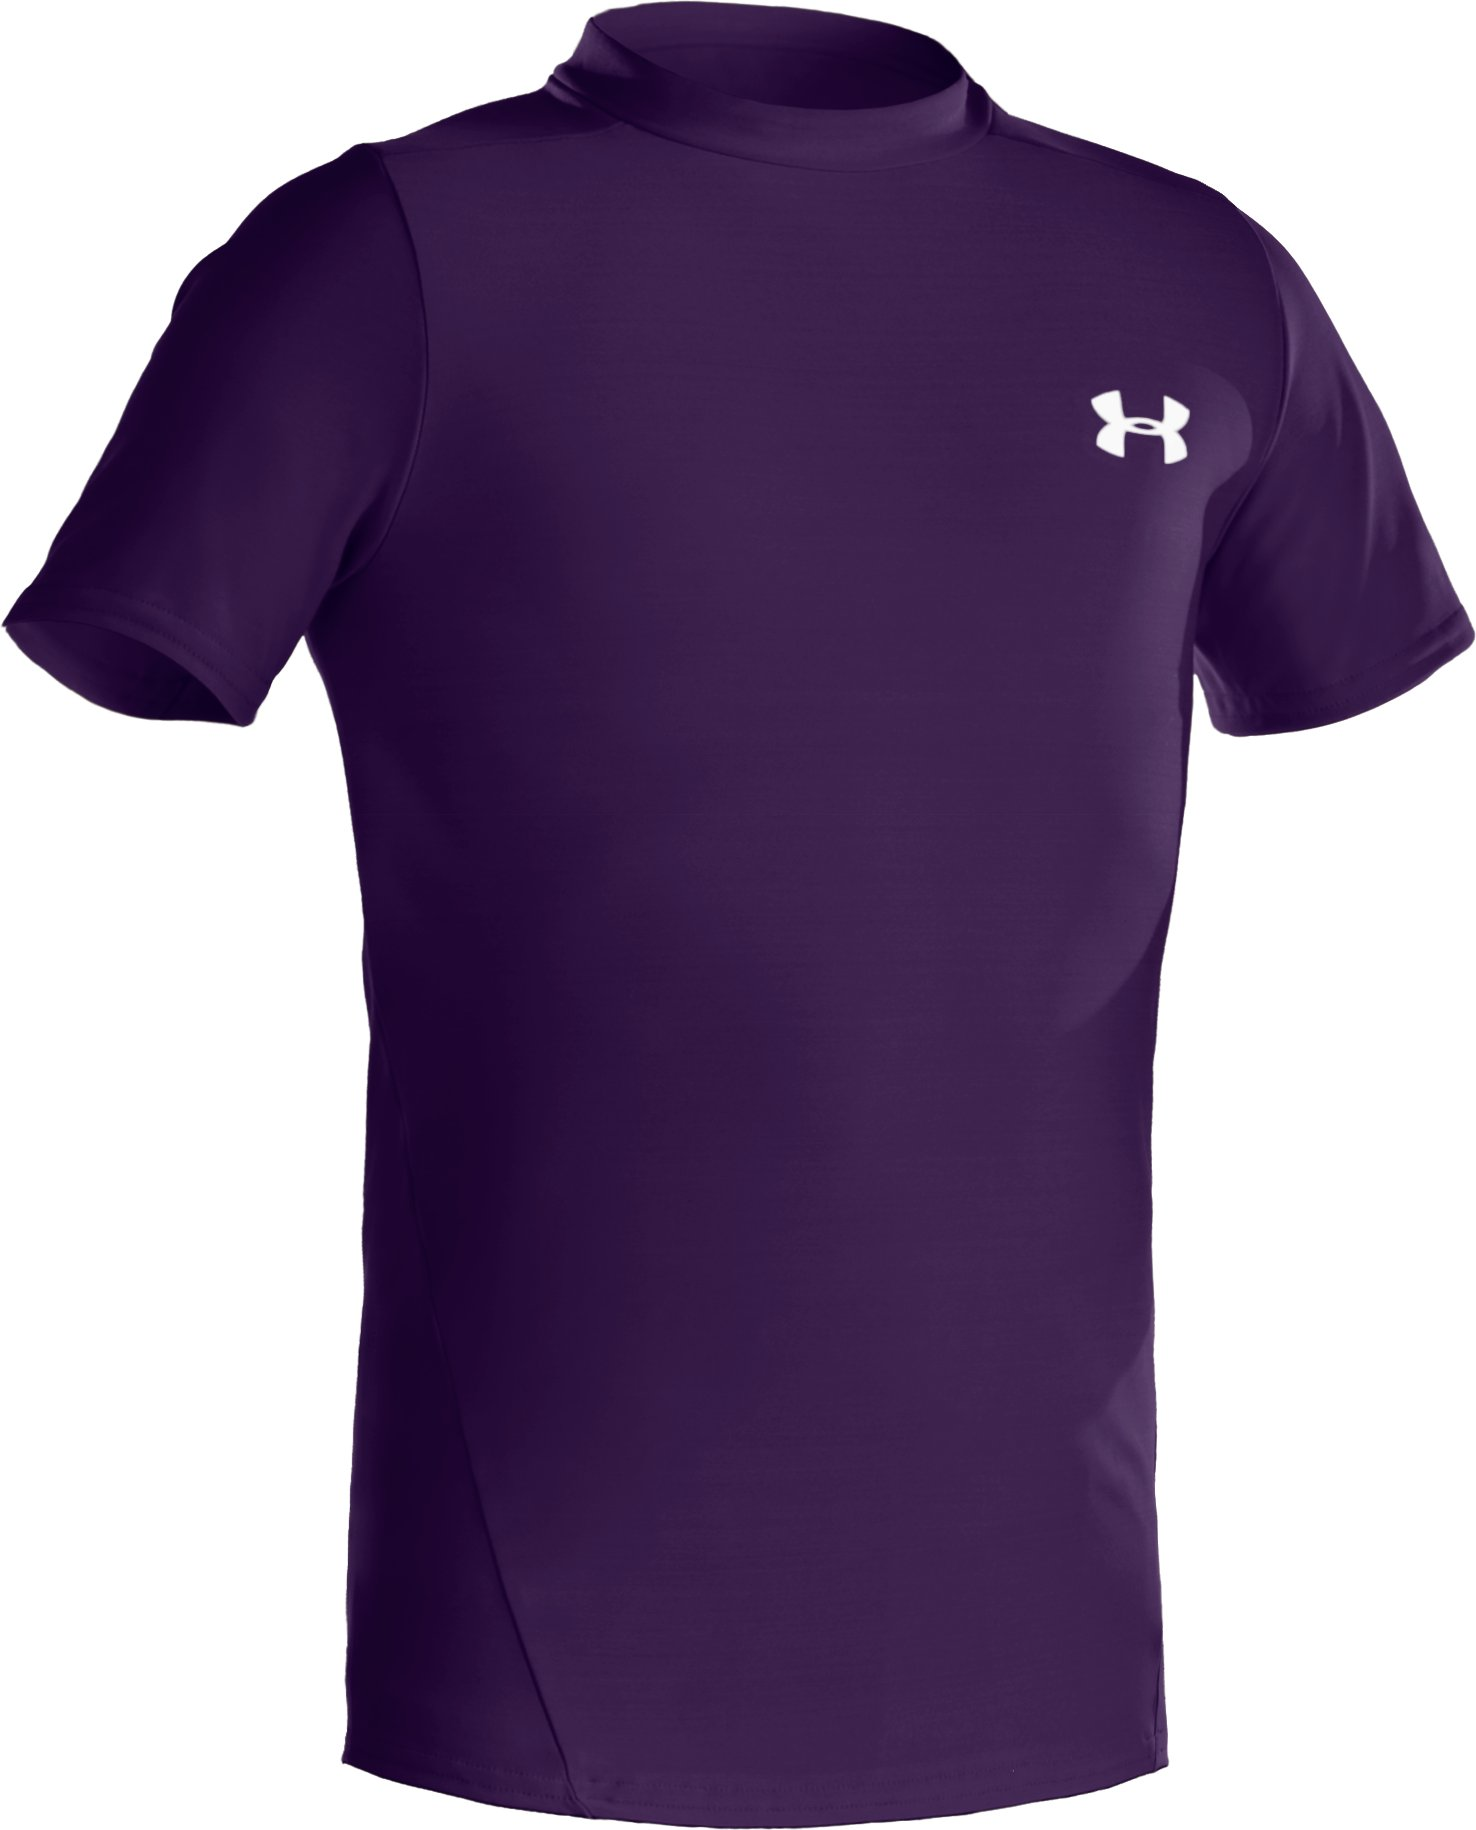 Boys' Short Sleeve HeatGear® T-Shirt II, Purple,